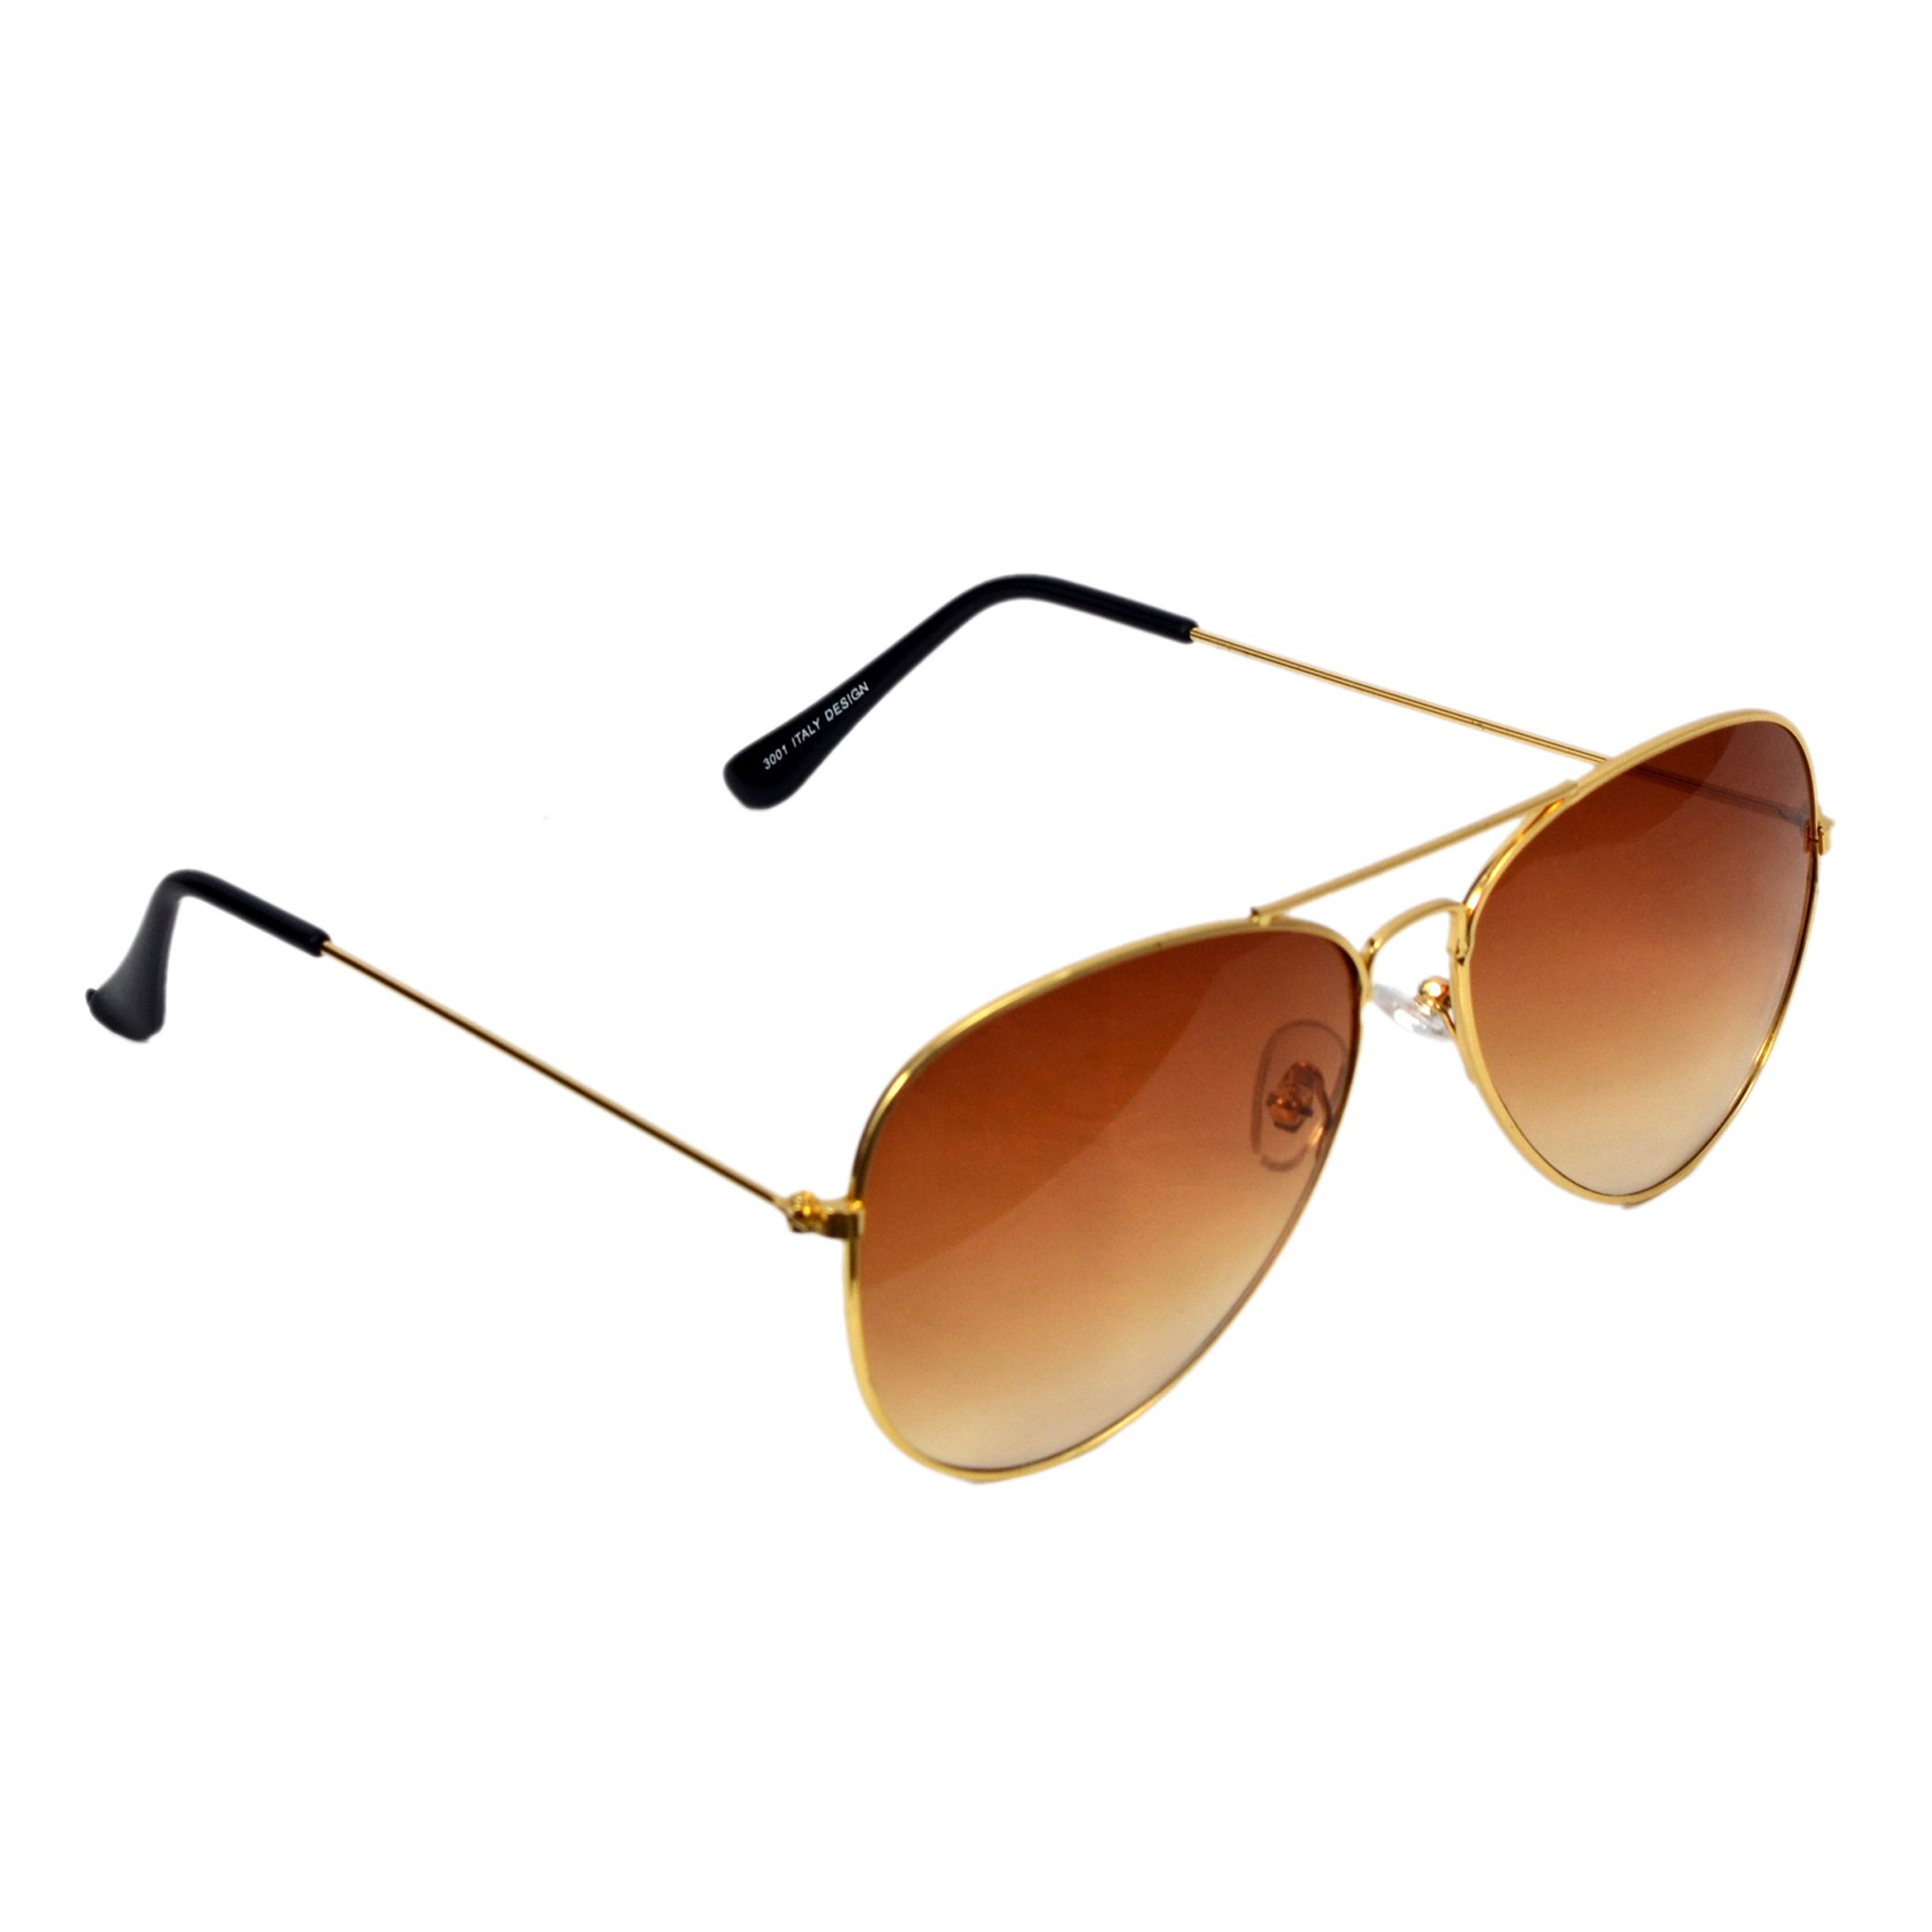 d3ae58e1e0 ANSH BLUE BAY COMPANY Brown Aviator Sunglasses ( ABBS 11 ) - Buy ...